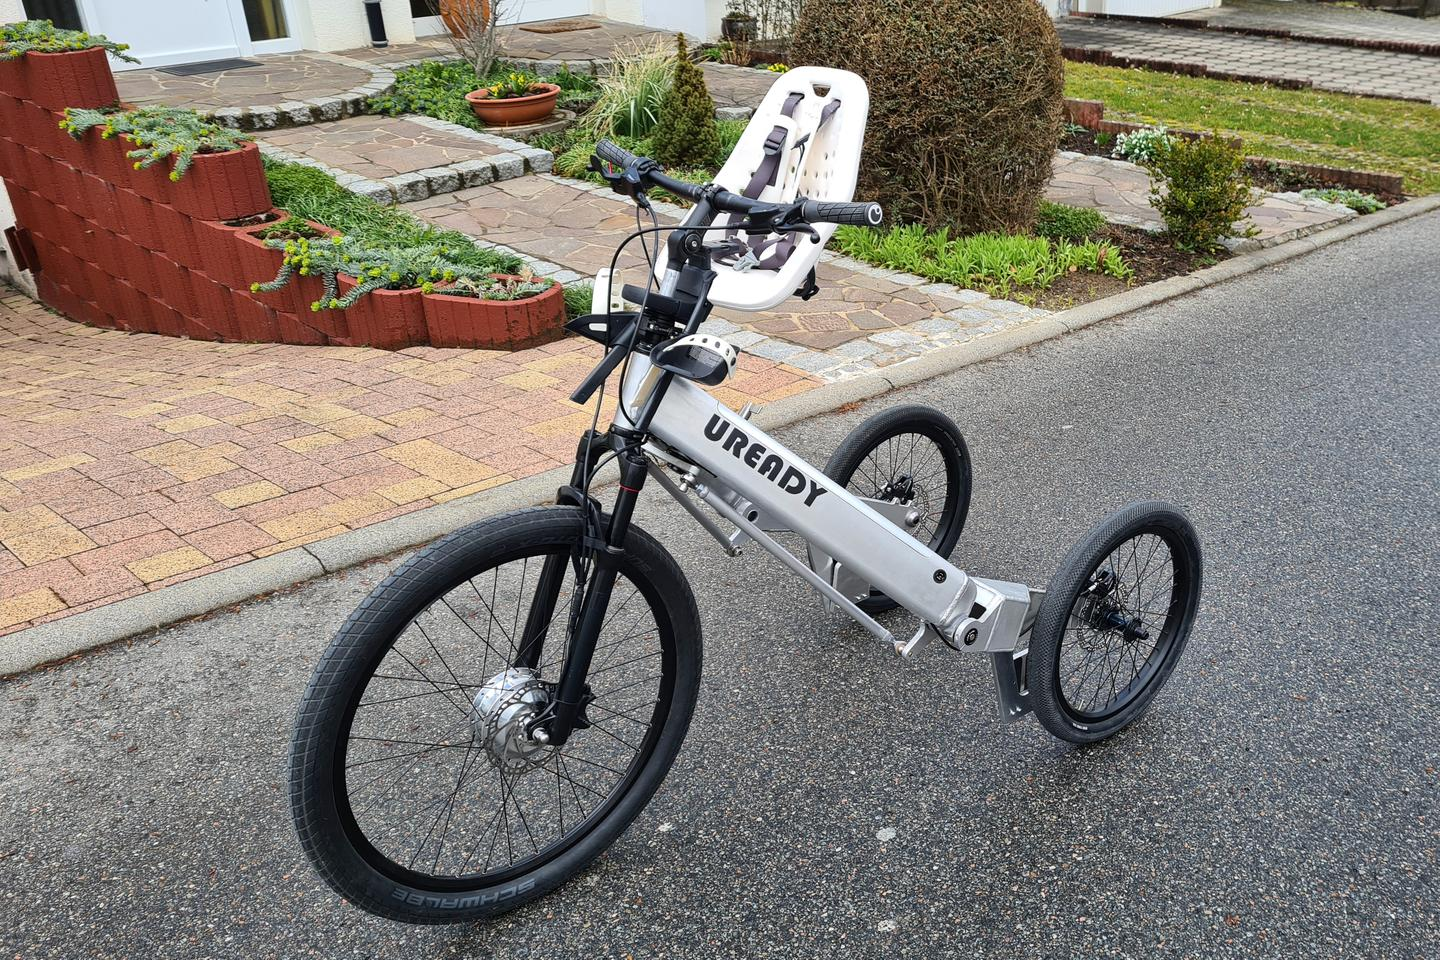 The Uready, pictured here with a suspension fork and a child seat